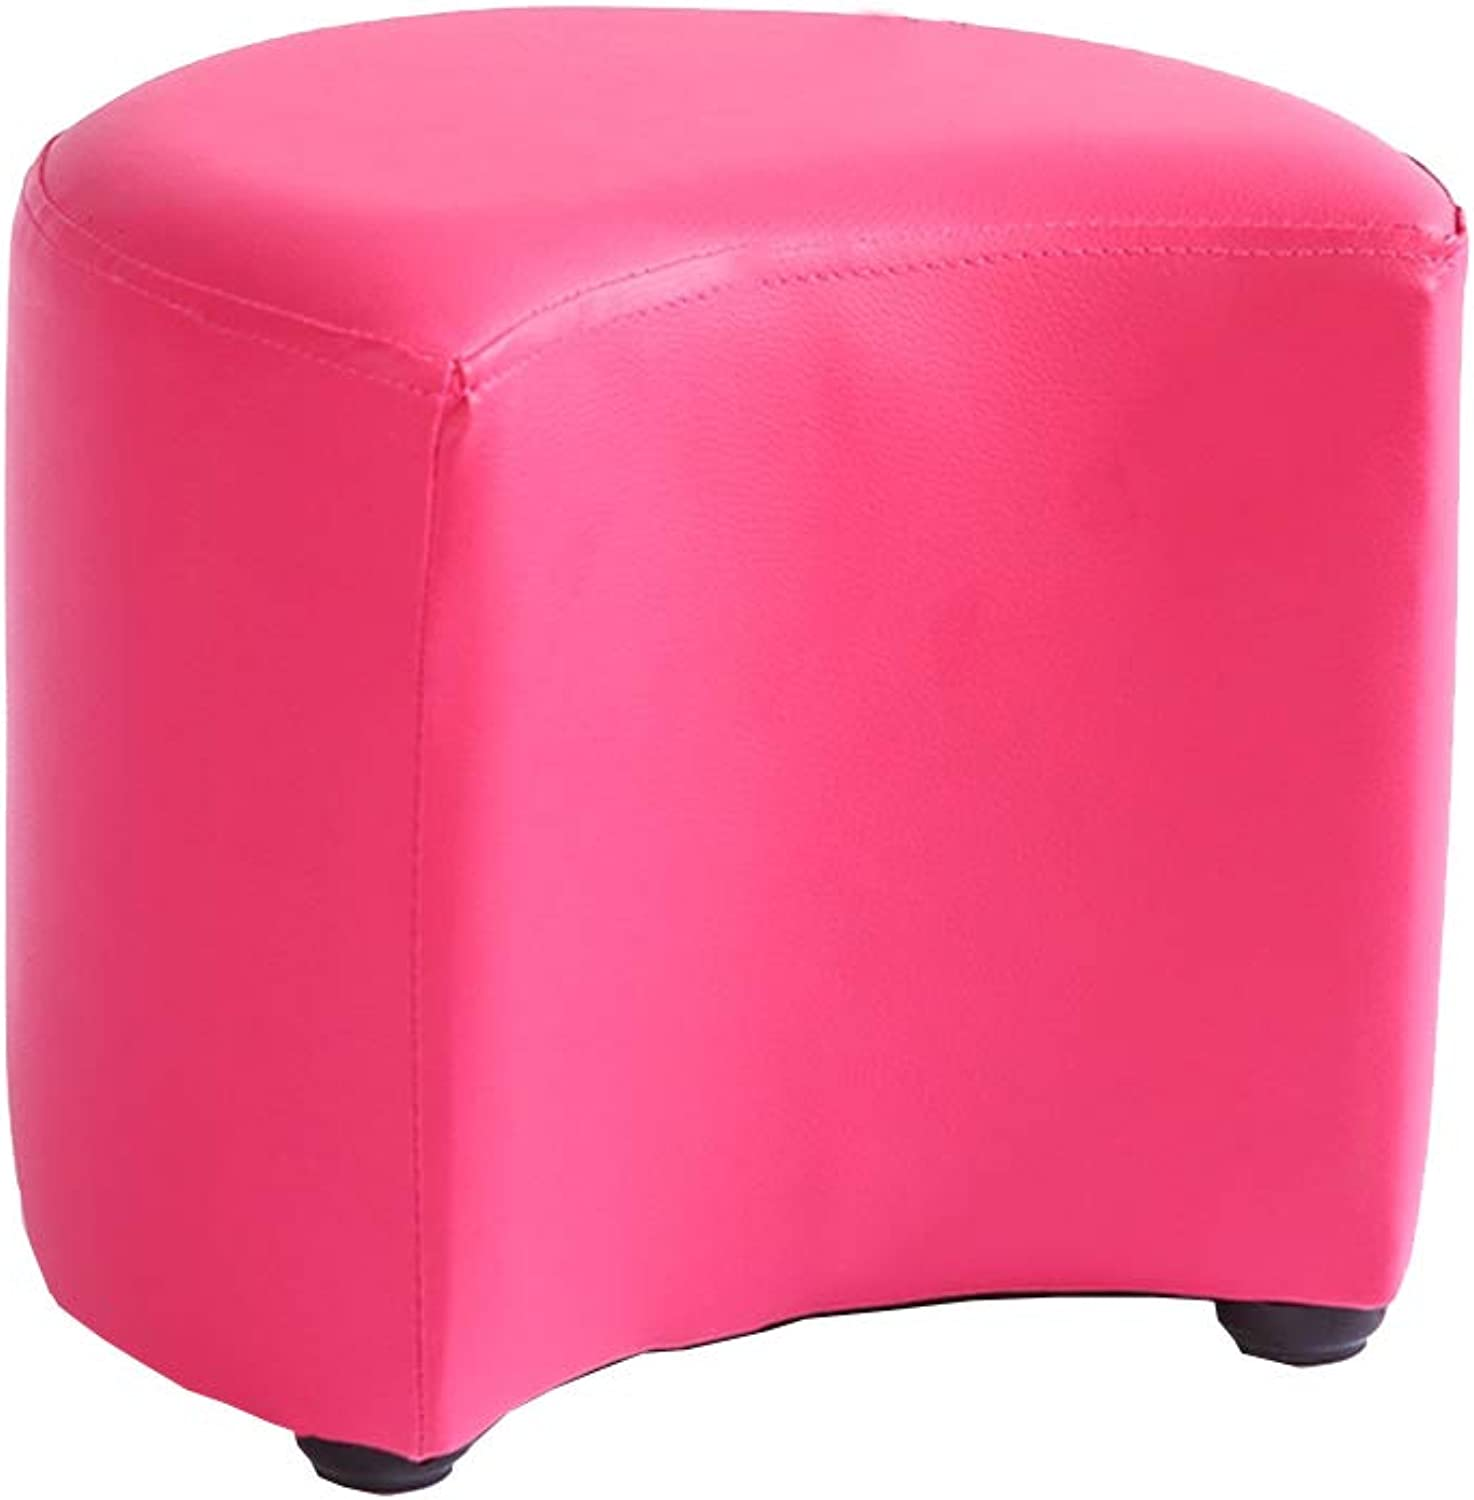 ZHAOYONGLI Stools Footstool Step Stools Work Stool Living Room Bedroom Cortex Change shoes Multicolor Selection Multiple Choices Creative Solid Durable Long Lasting